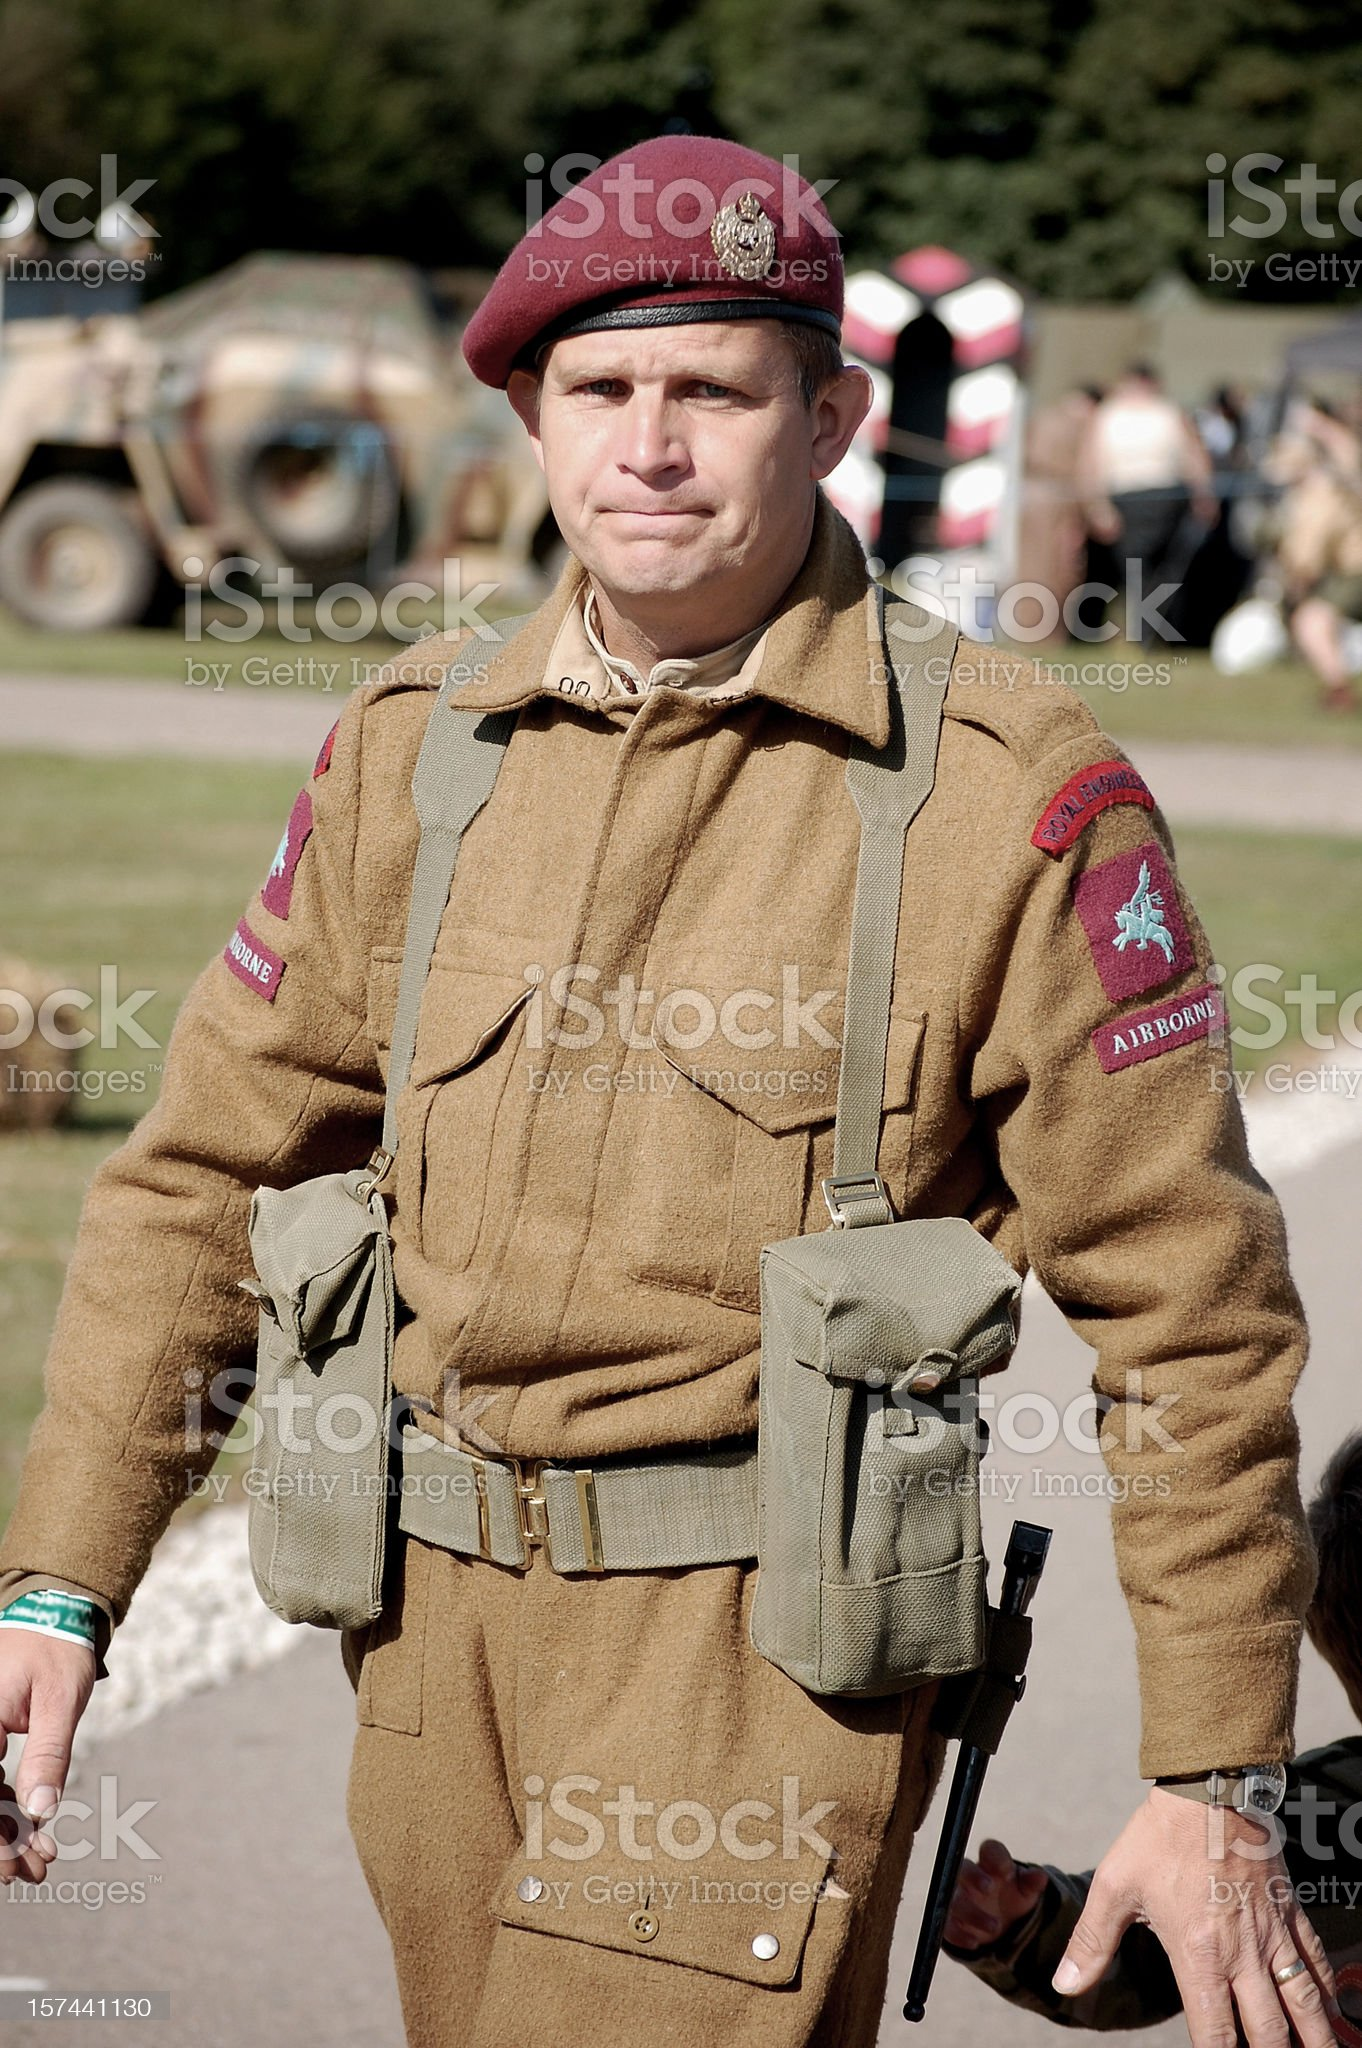 Airborne British Soldier. royalty-free stock photo